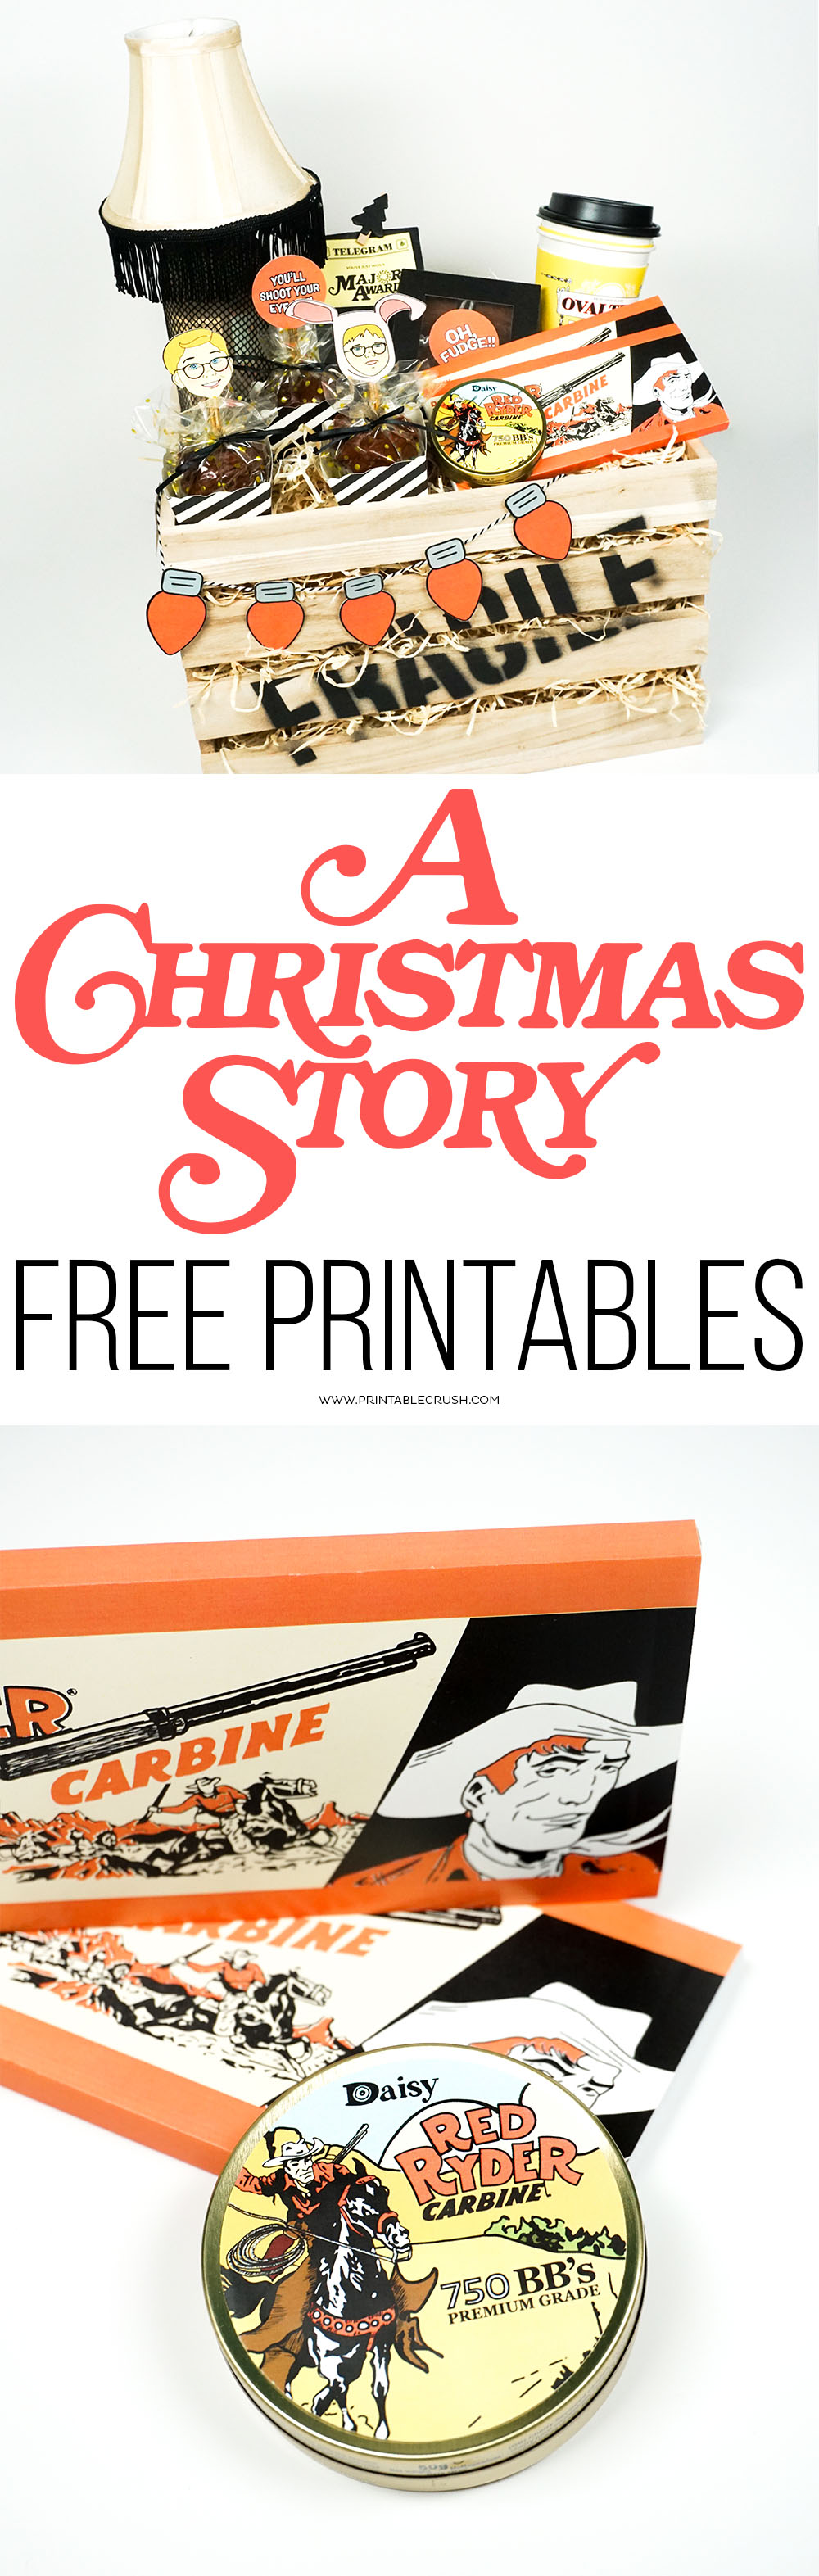 download a christmas story free printables to use at parties or for creative christmas gifts